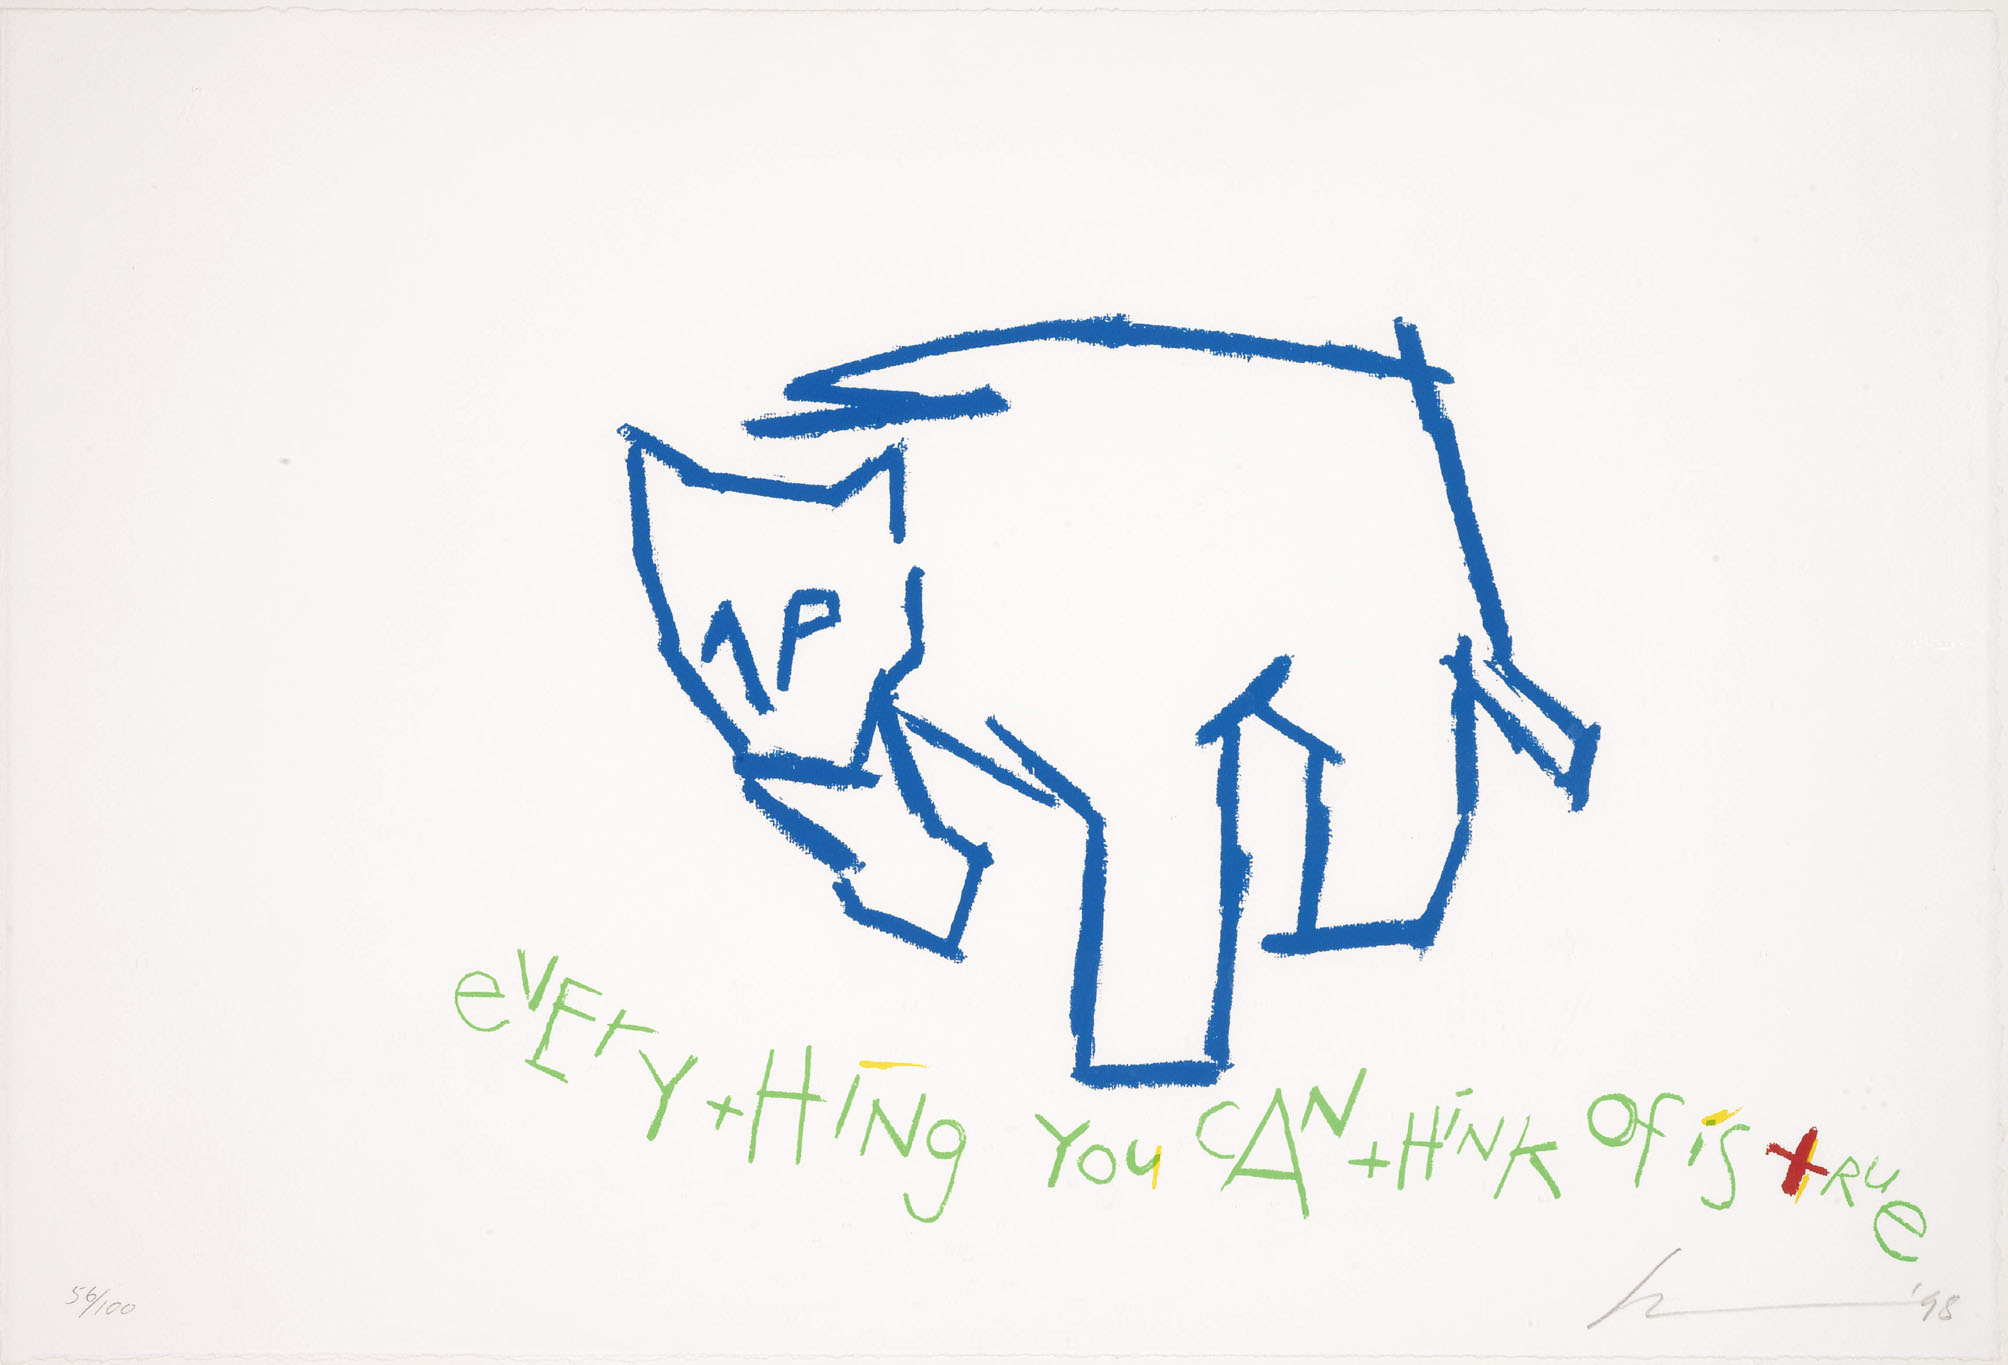 Robert Wilson, Everything You Can Think Of Is True, 15 by 22 3/8 in (8 by 57cm). Est. 300-400 GBP